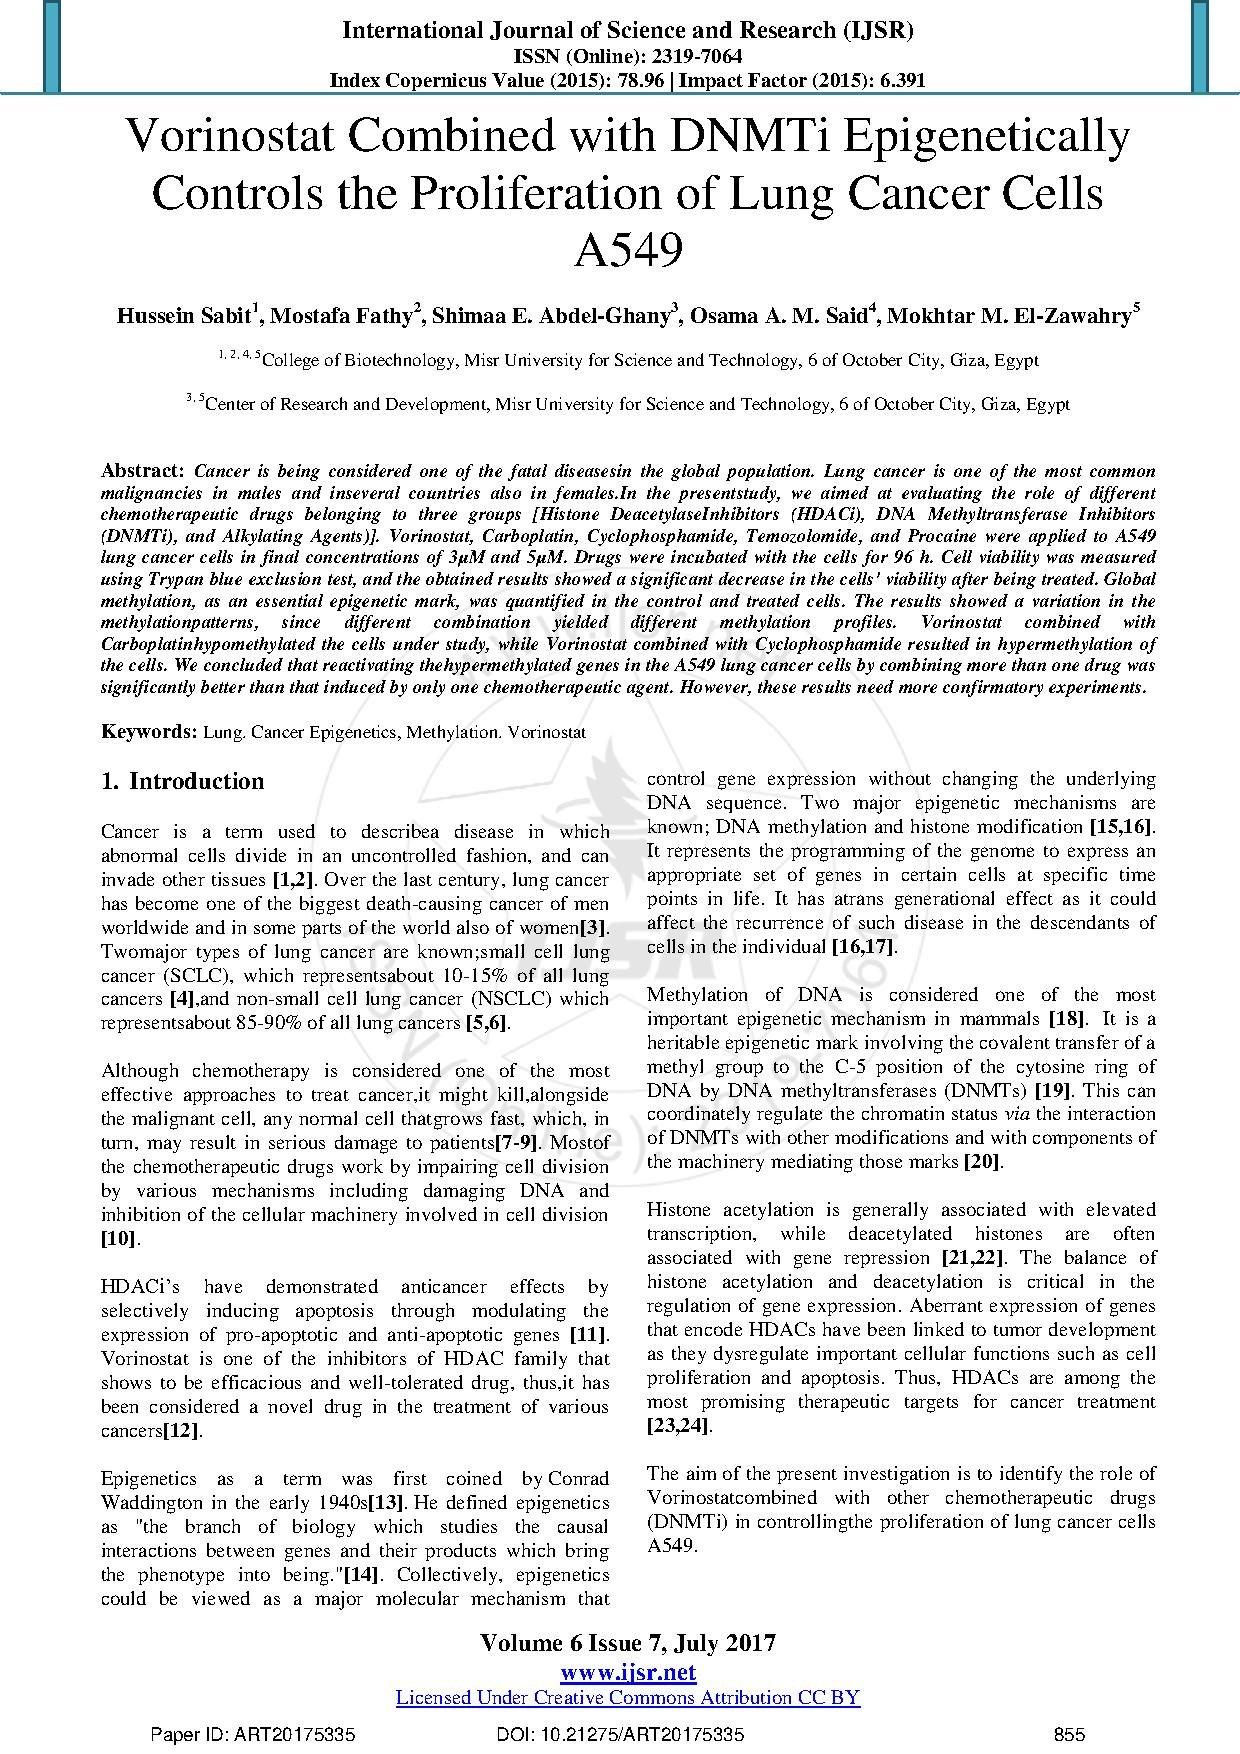 File:Vorinostat Combined with DNMTi Epigenetically Controls the